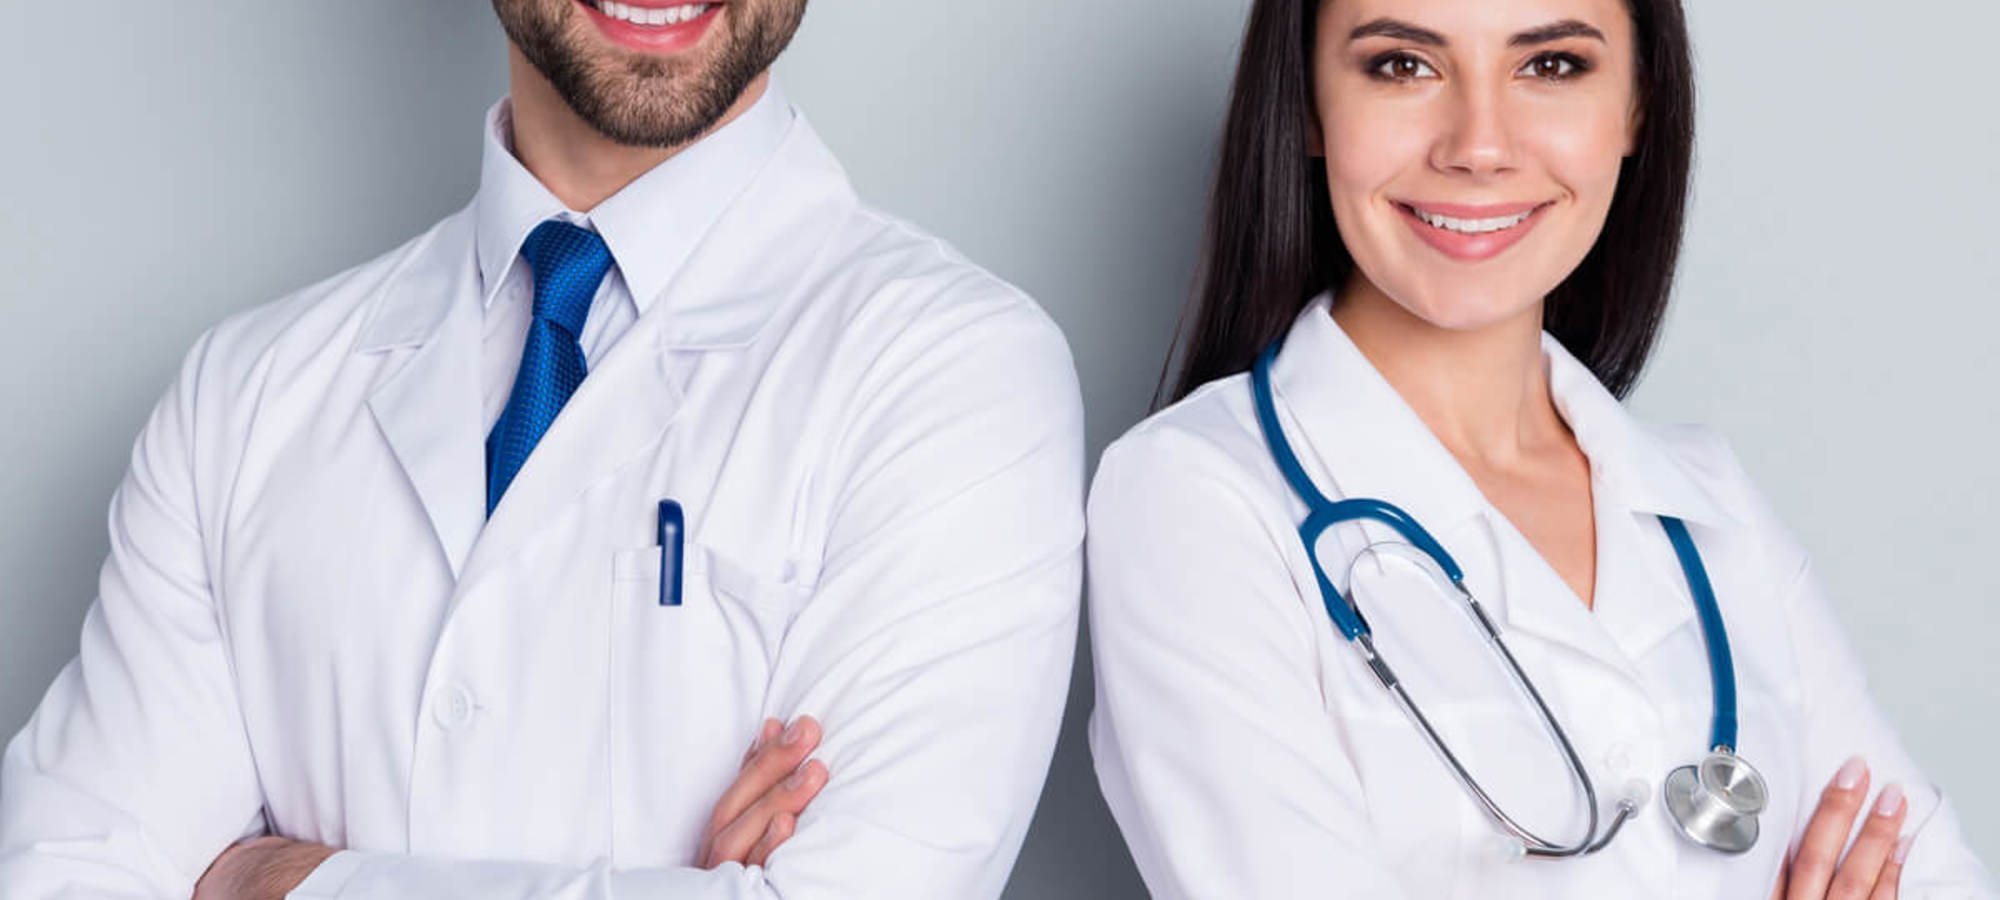 Physician recruiting capabilities and recruitment services deployed worldwide